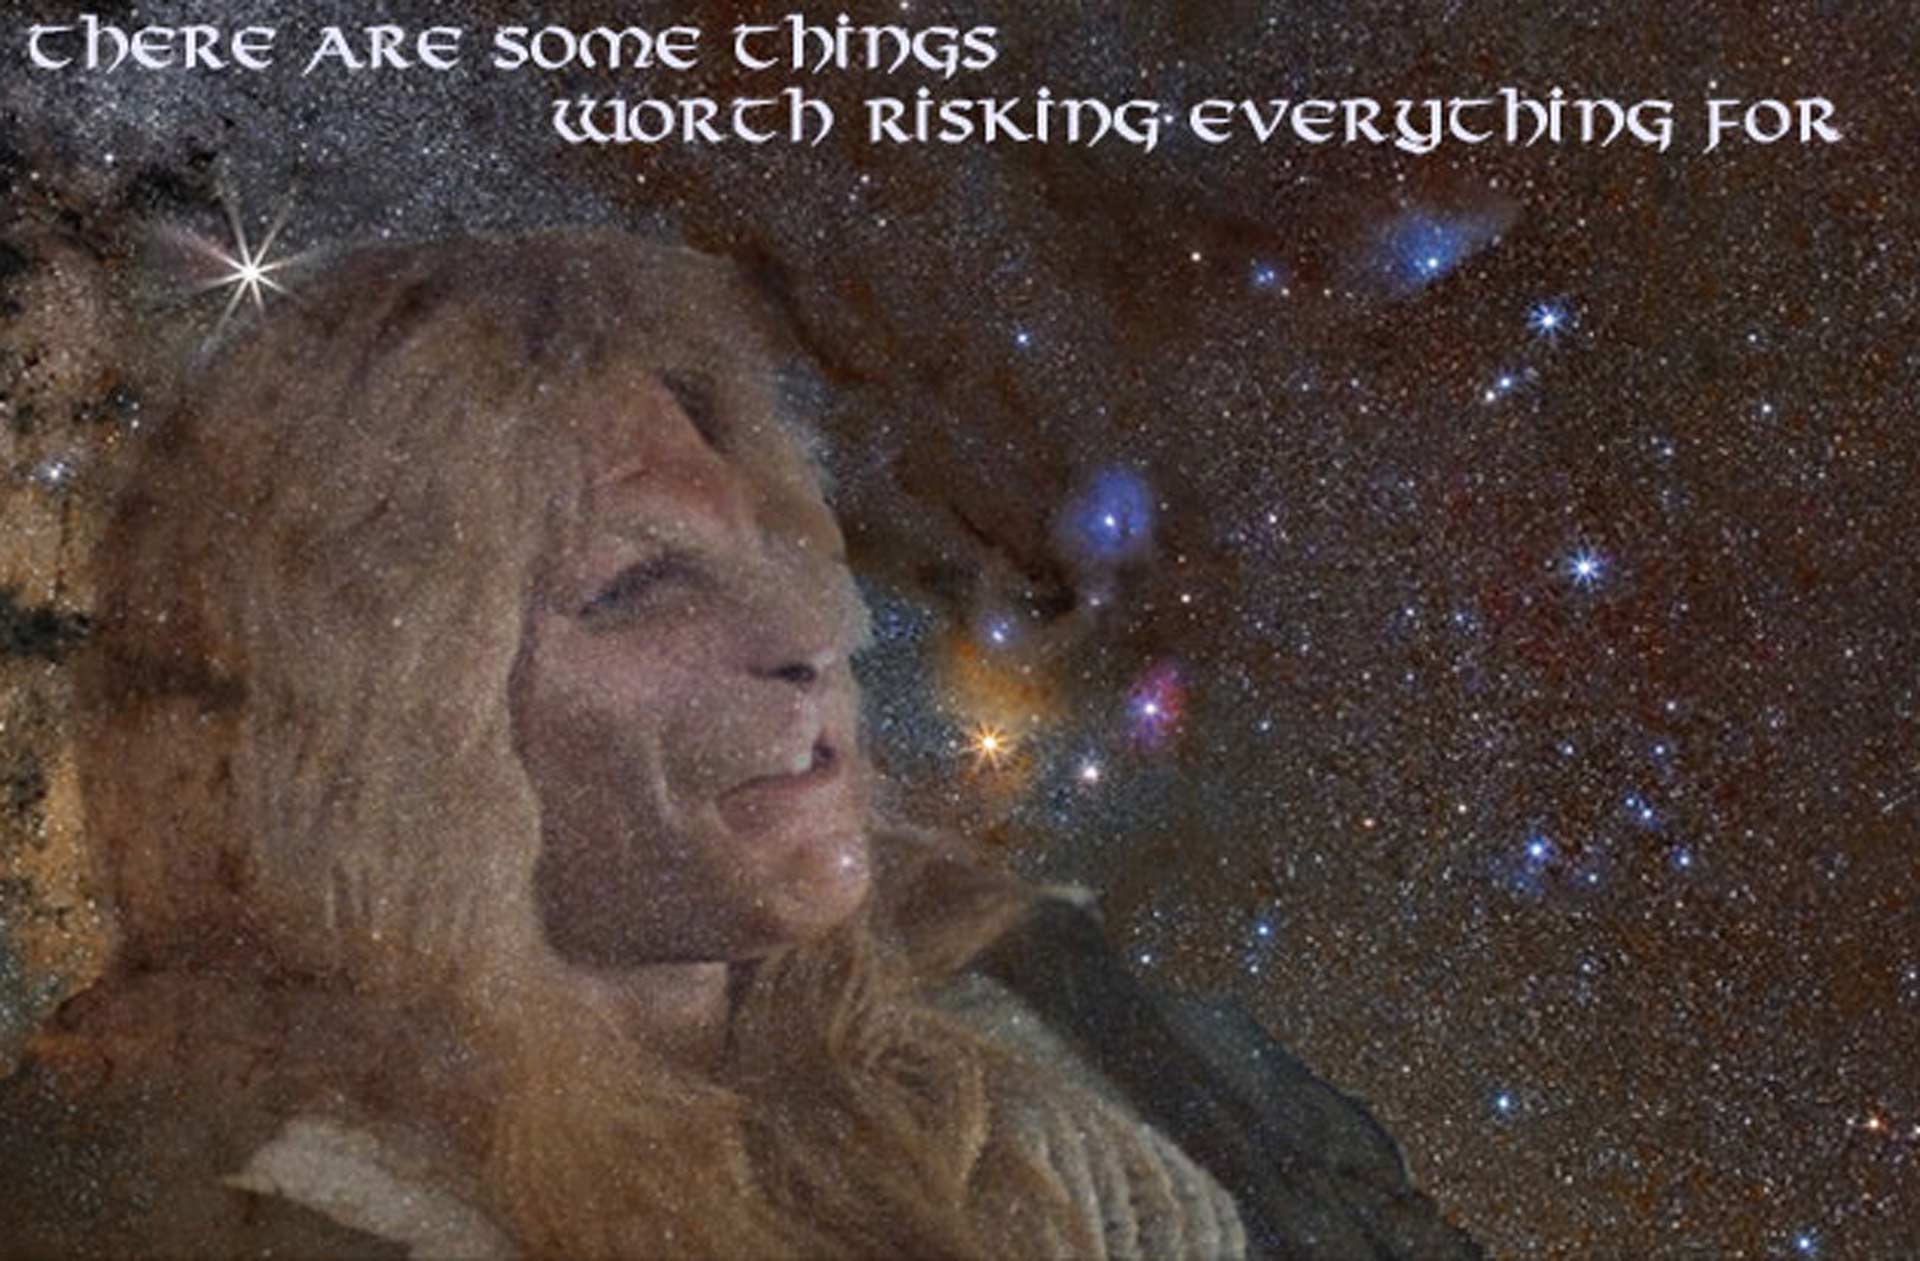 Vincent almost laughing, the Dark River nebula in the background. Text reads: There are some things worth risking everything for